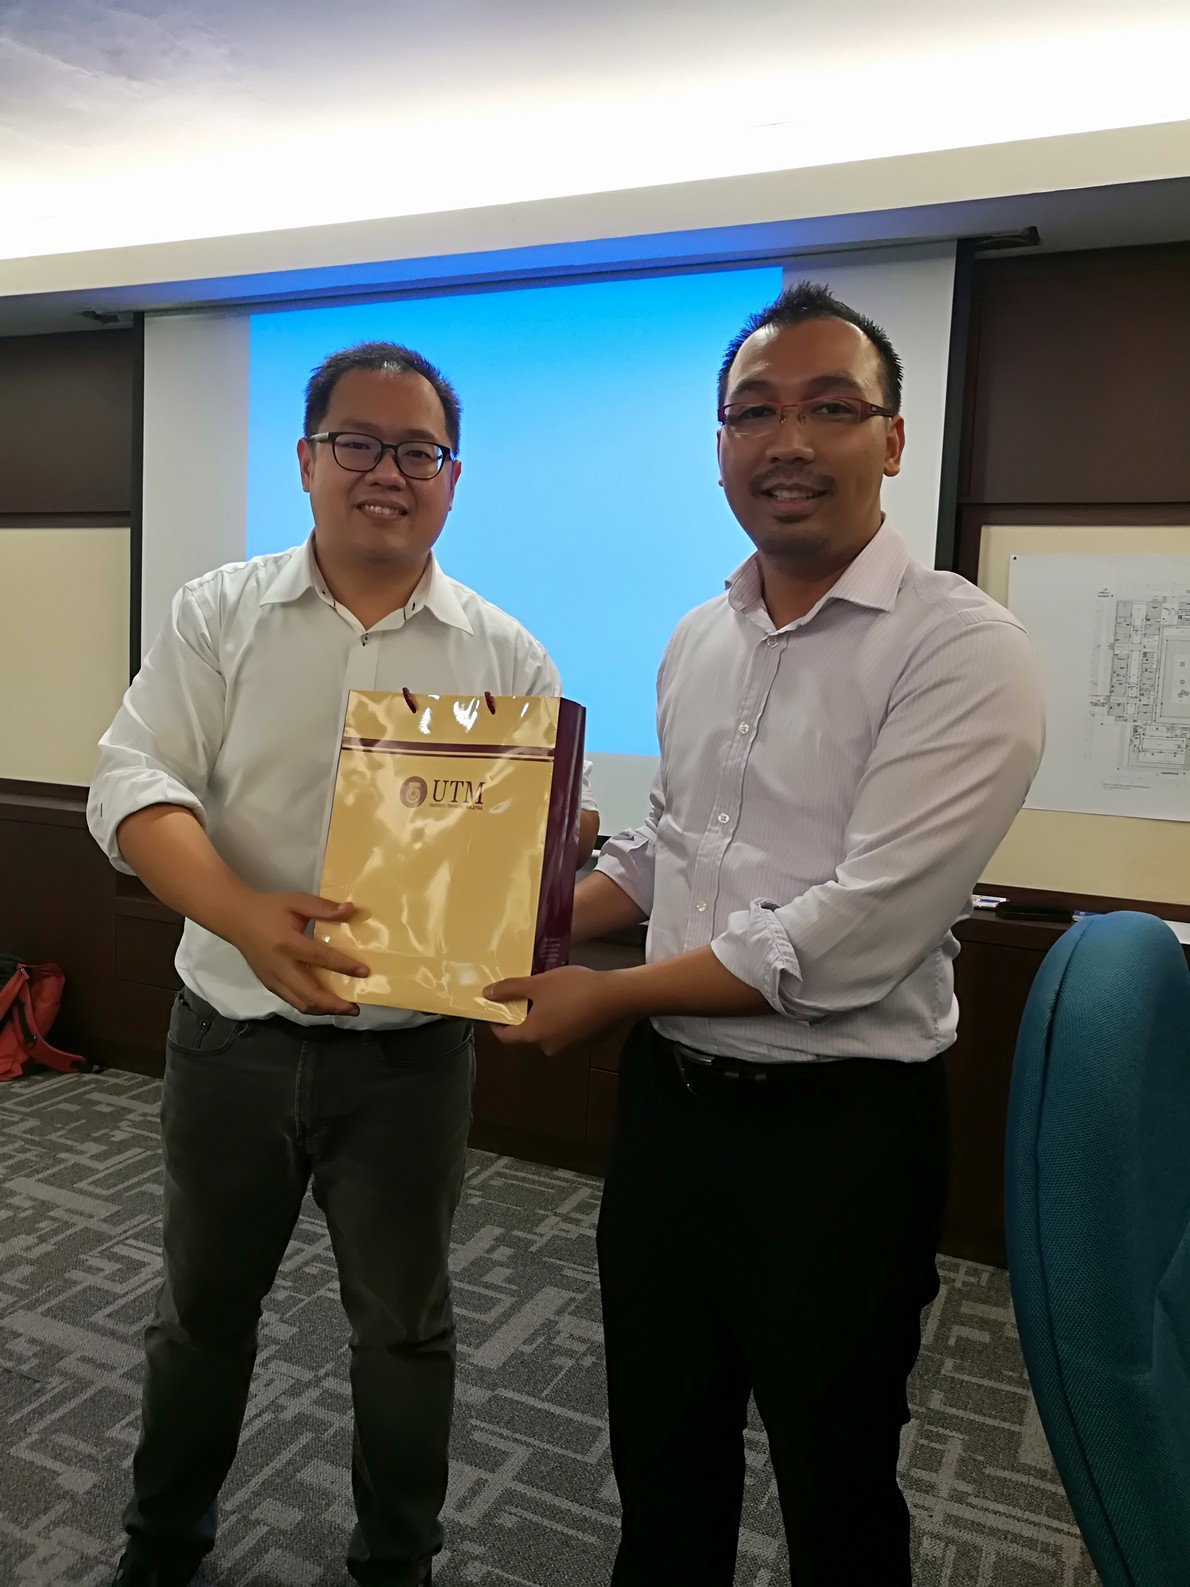 Token appreciation is given by Dr. Firdaus from UTM